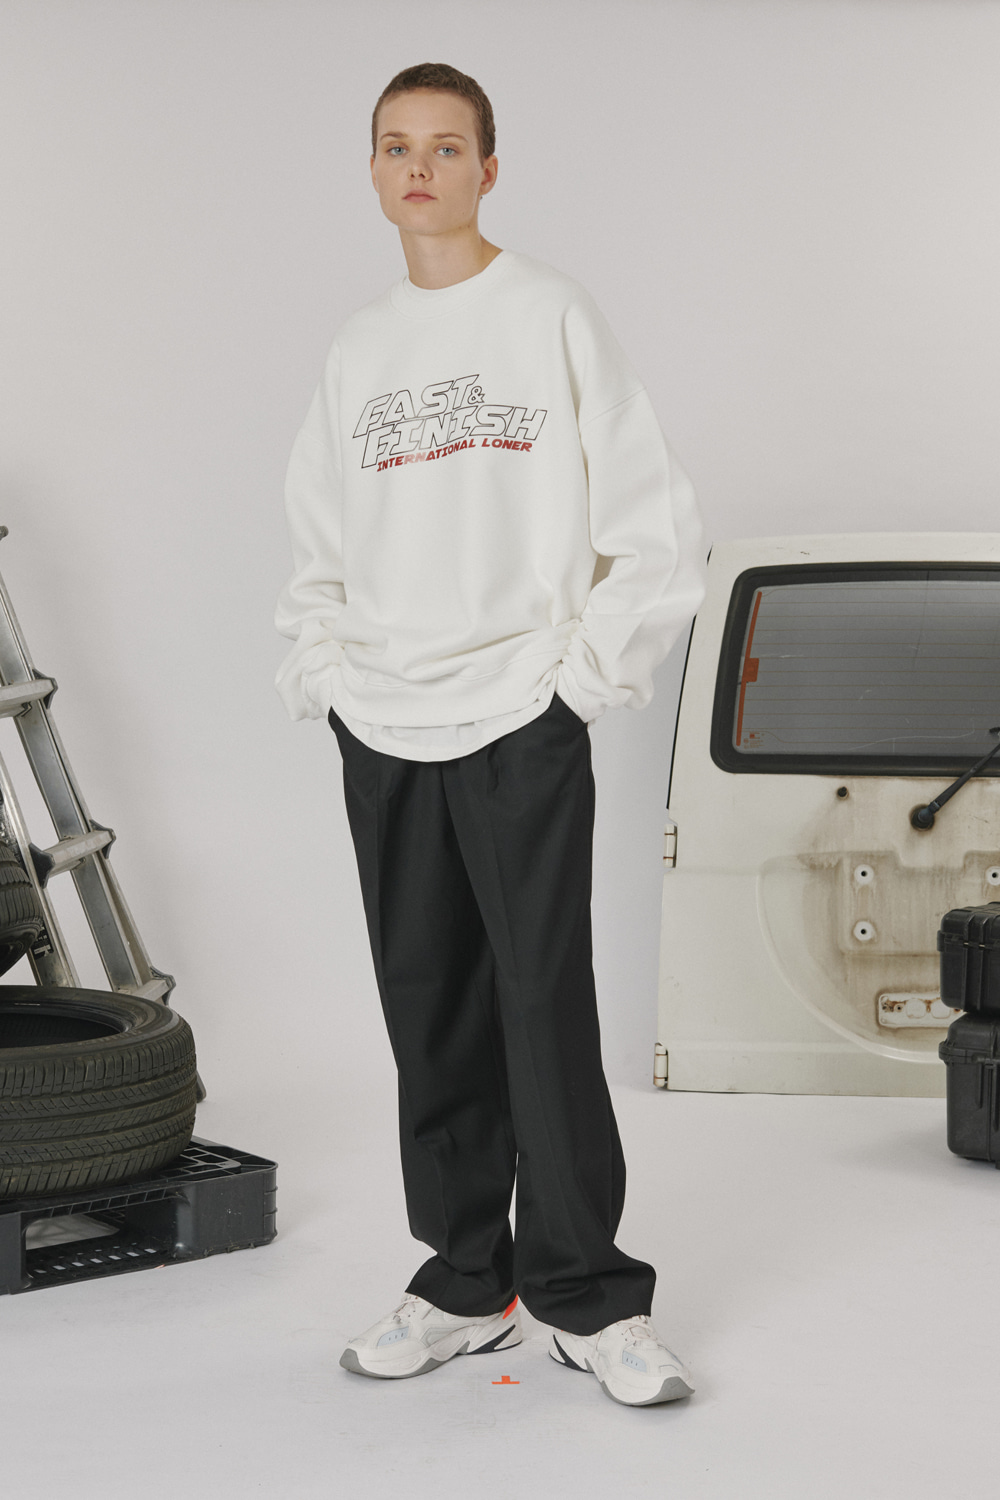 [LONER SEASON OFF SALE] Fast and finish sweatshirt - White (기간한정 01.17 - 01.23)